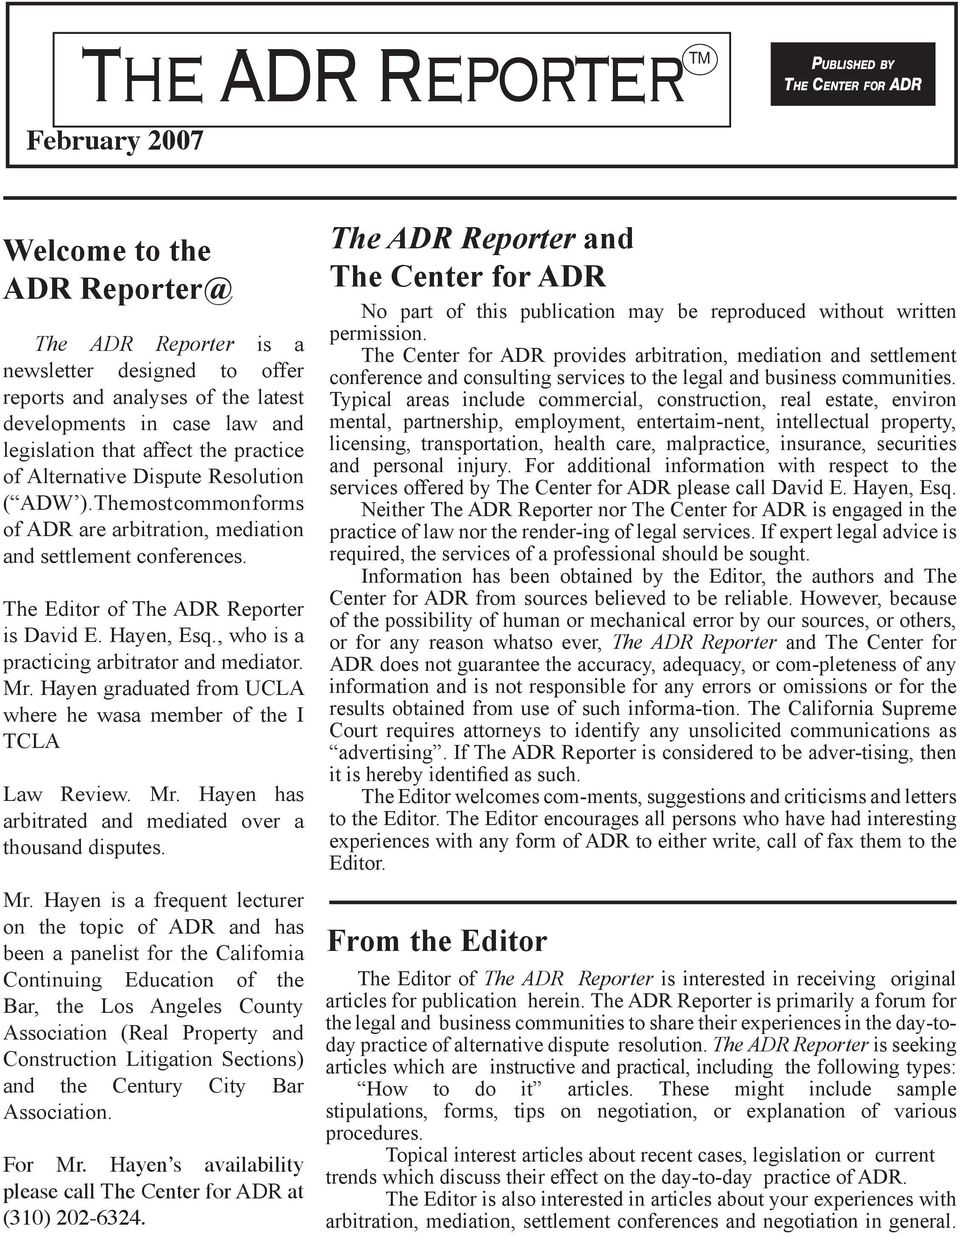 The Editor of The ADR Reporter is David E. Hayen, Esq., who is a practicing arbitrator and mediator. Mr. Hayen graduated from UCLA where he wasa member of the I TCLA Law Review. Mr. Hayen has arbitrated and mediated over a thousand disputes.